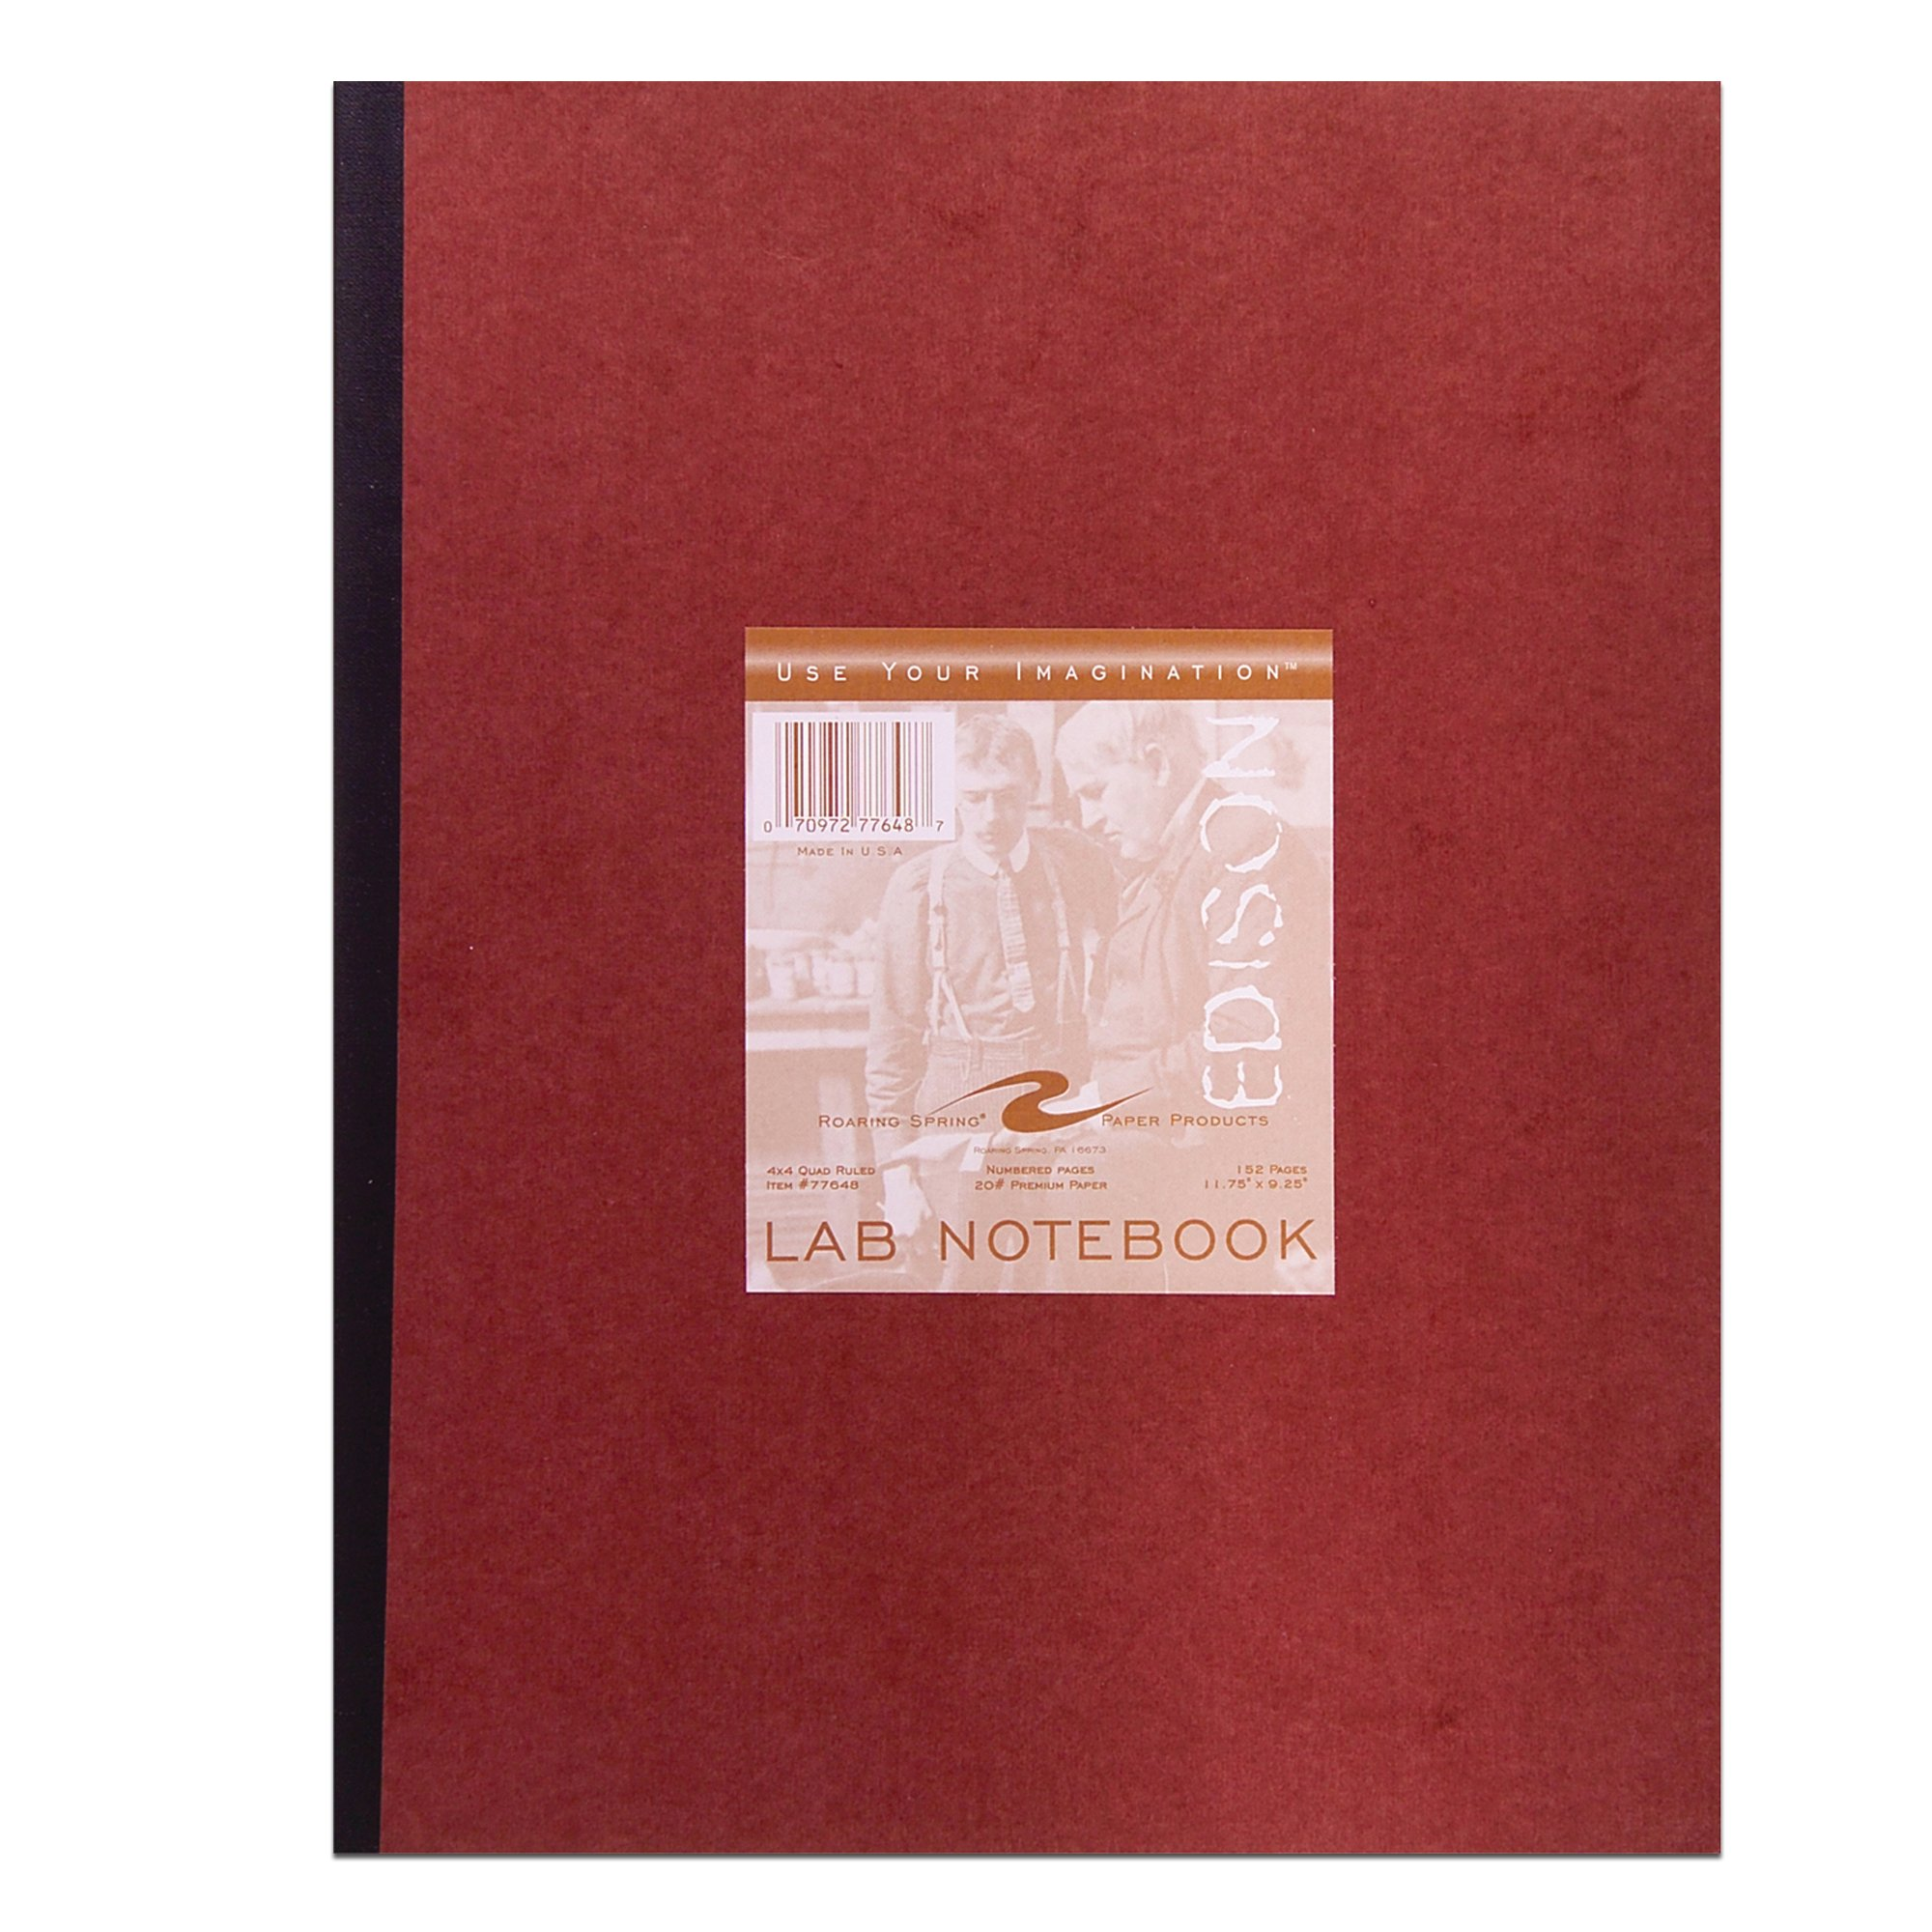 Roaring Spring Oversize Lab Book, 11 3/4'' x 9 1/4'', 76 sheets, Numbered by Roaring Spring Paper Products